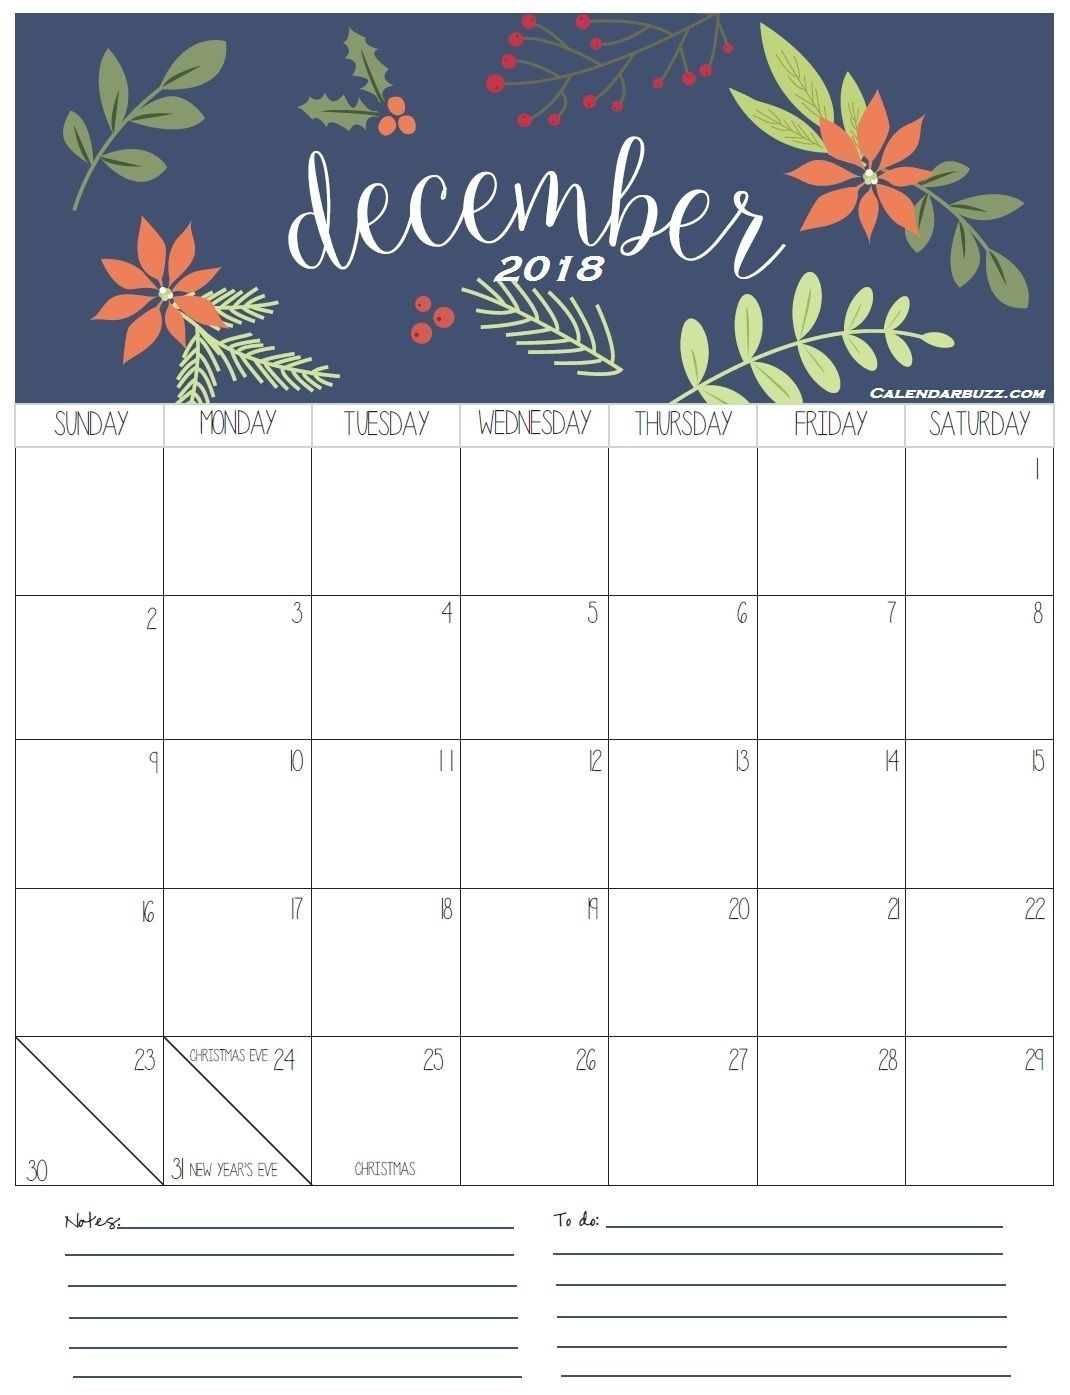 Pregnancy Calendar April To January Organizer | Calendar Format Example pertaining to Pregnancy Calendar April To January Organizer